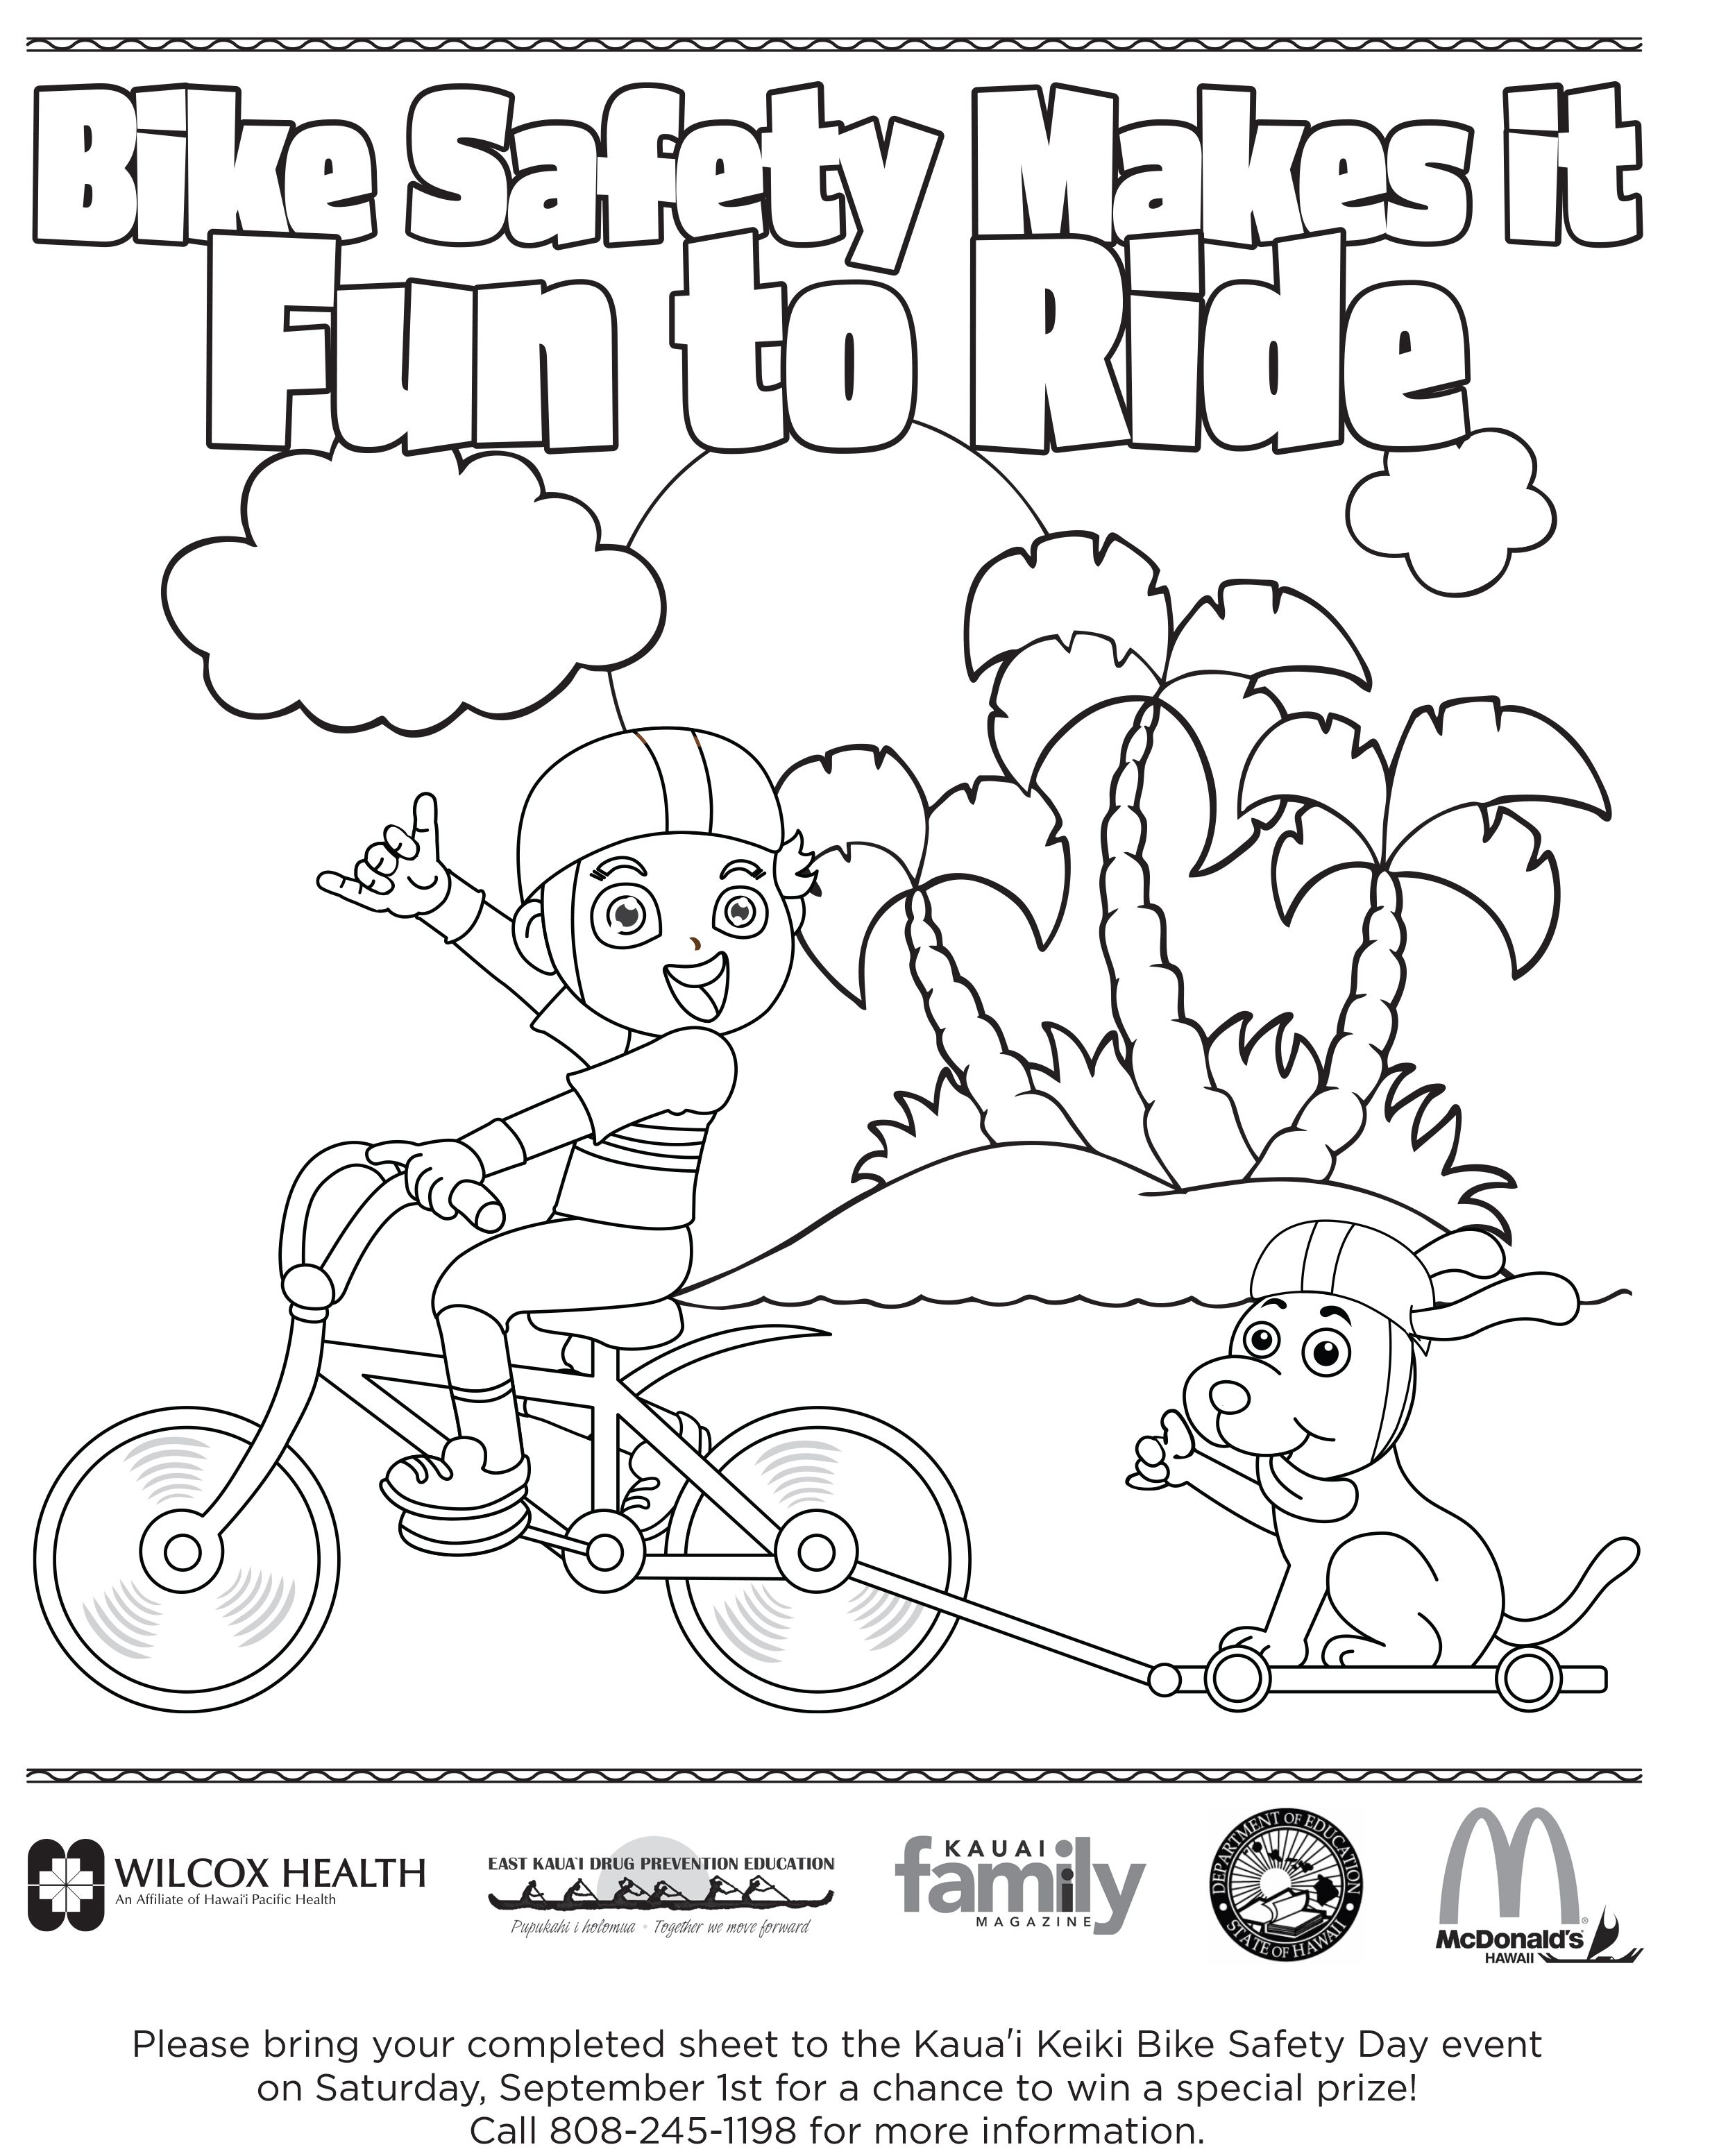 Colouring sheets for road safety - Bicycle Safety Coloring Pages 5 Free Printable Coloring Pages Printable Pictures Colouring